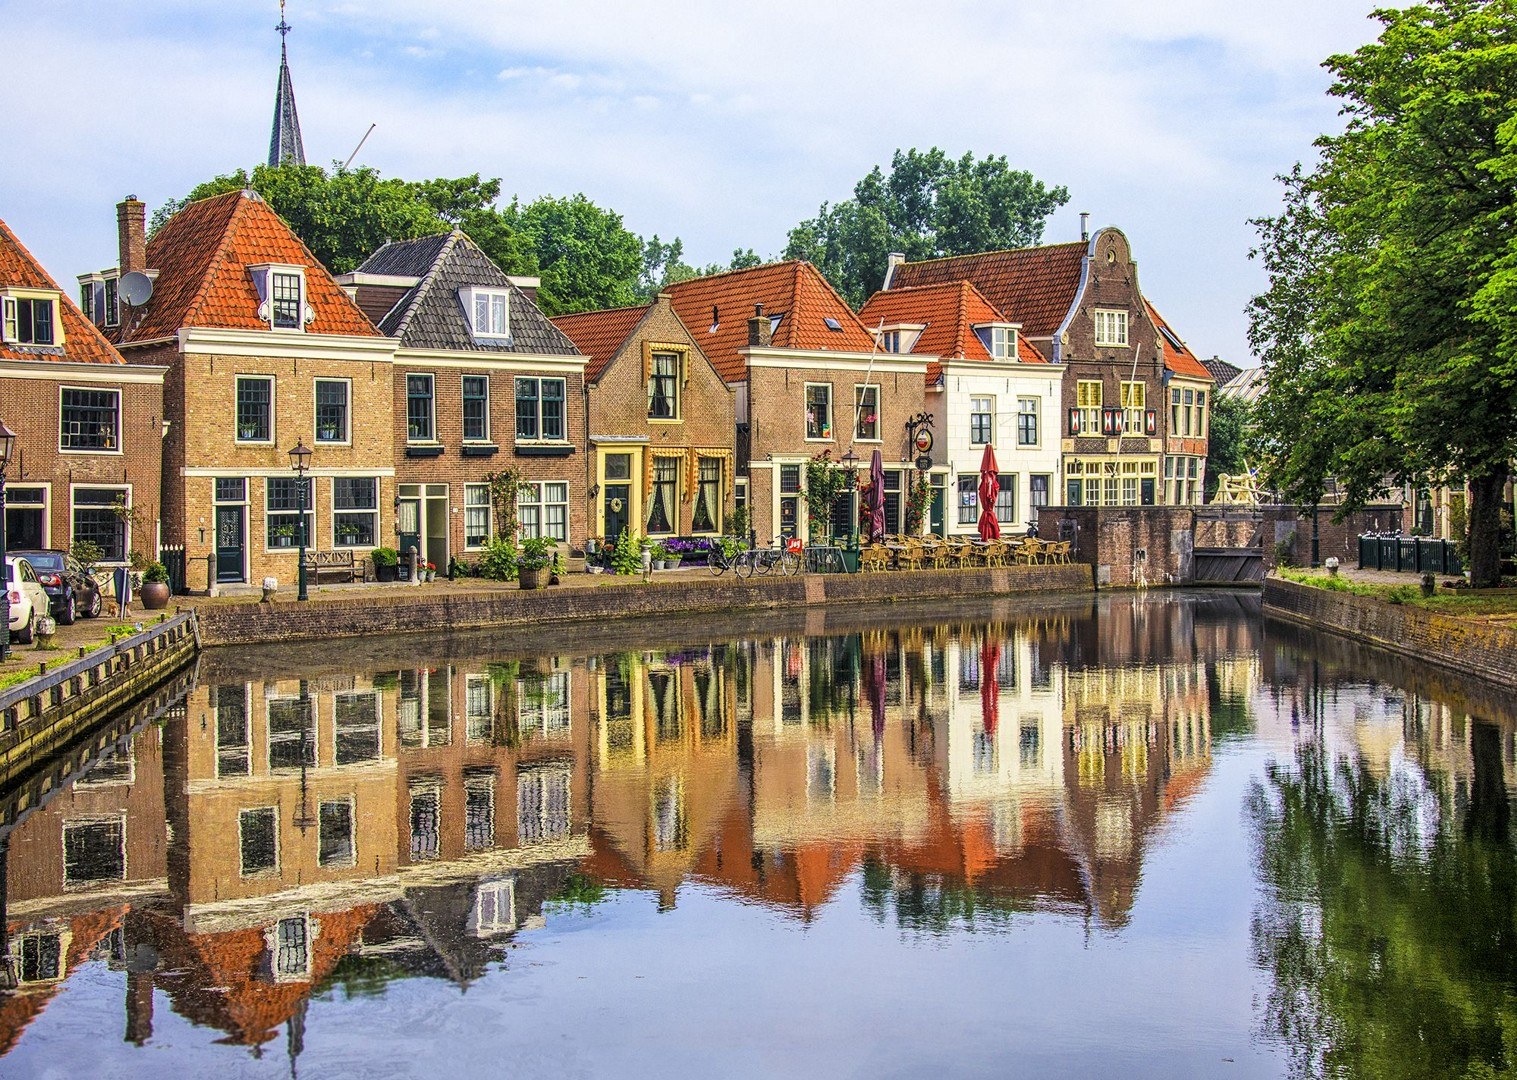 traditional-holland-and-belgium-houses-skedaddle-cycling-tour-luxury-boat.jpg - Holland and Belgium - Amsterdam to Bruges - Premium Bike and Barge Holiday - Leisure Cycling